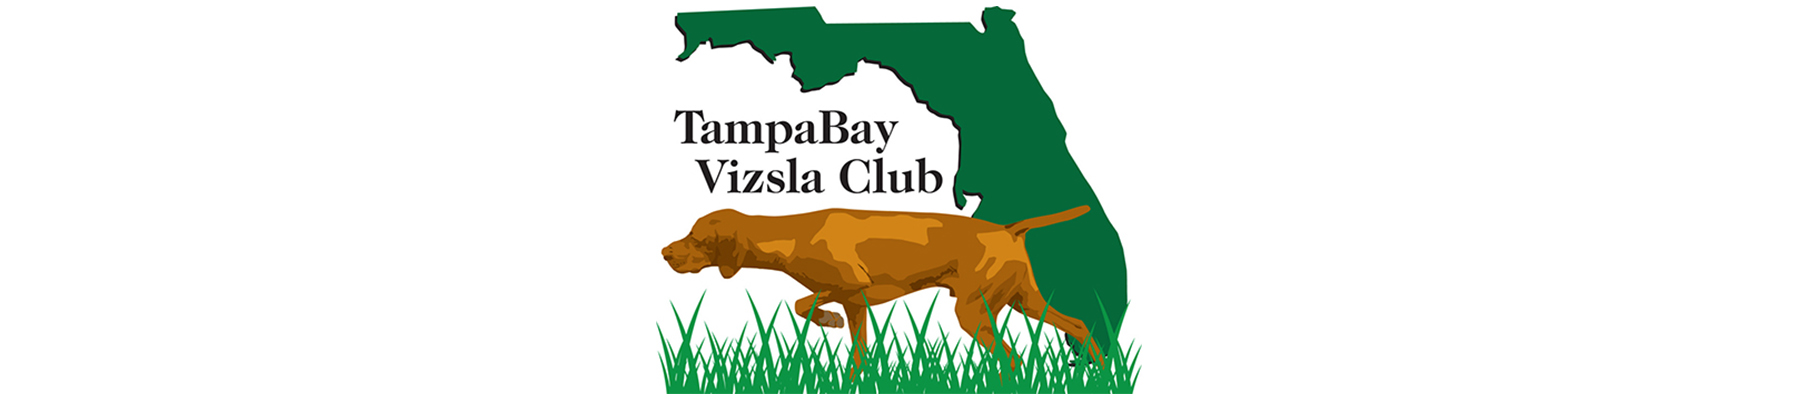 The Tampa Bay Vizsla Club